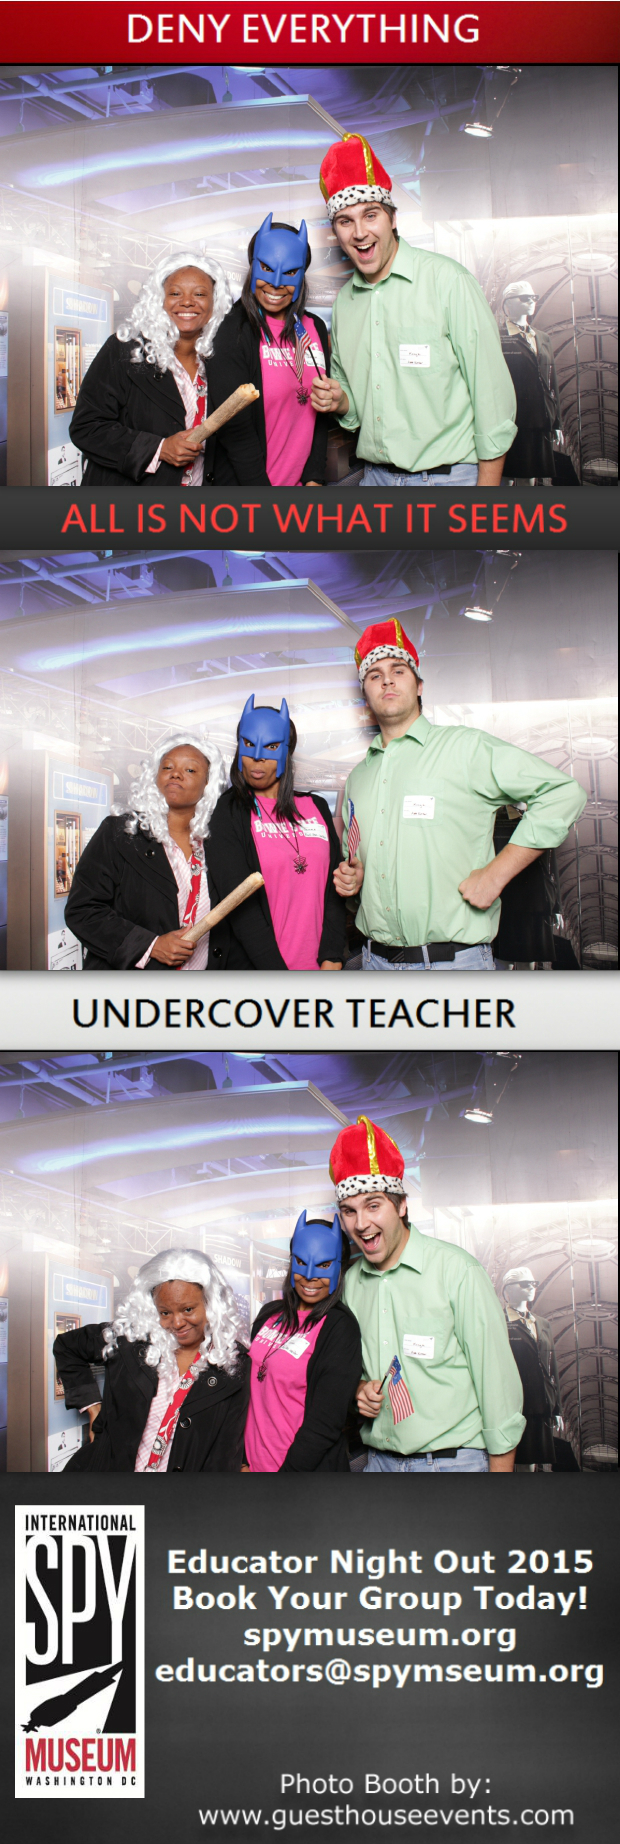 Guest House Events Photo Booth Spy Museum Educator Night Out (29).jpg